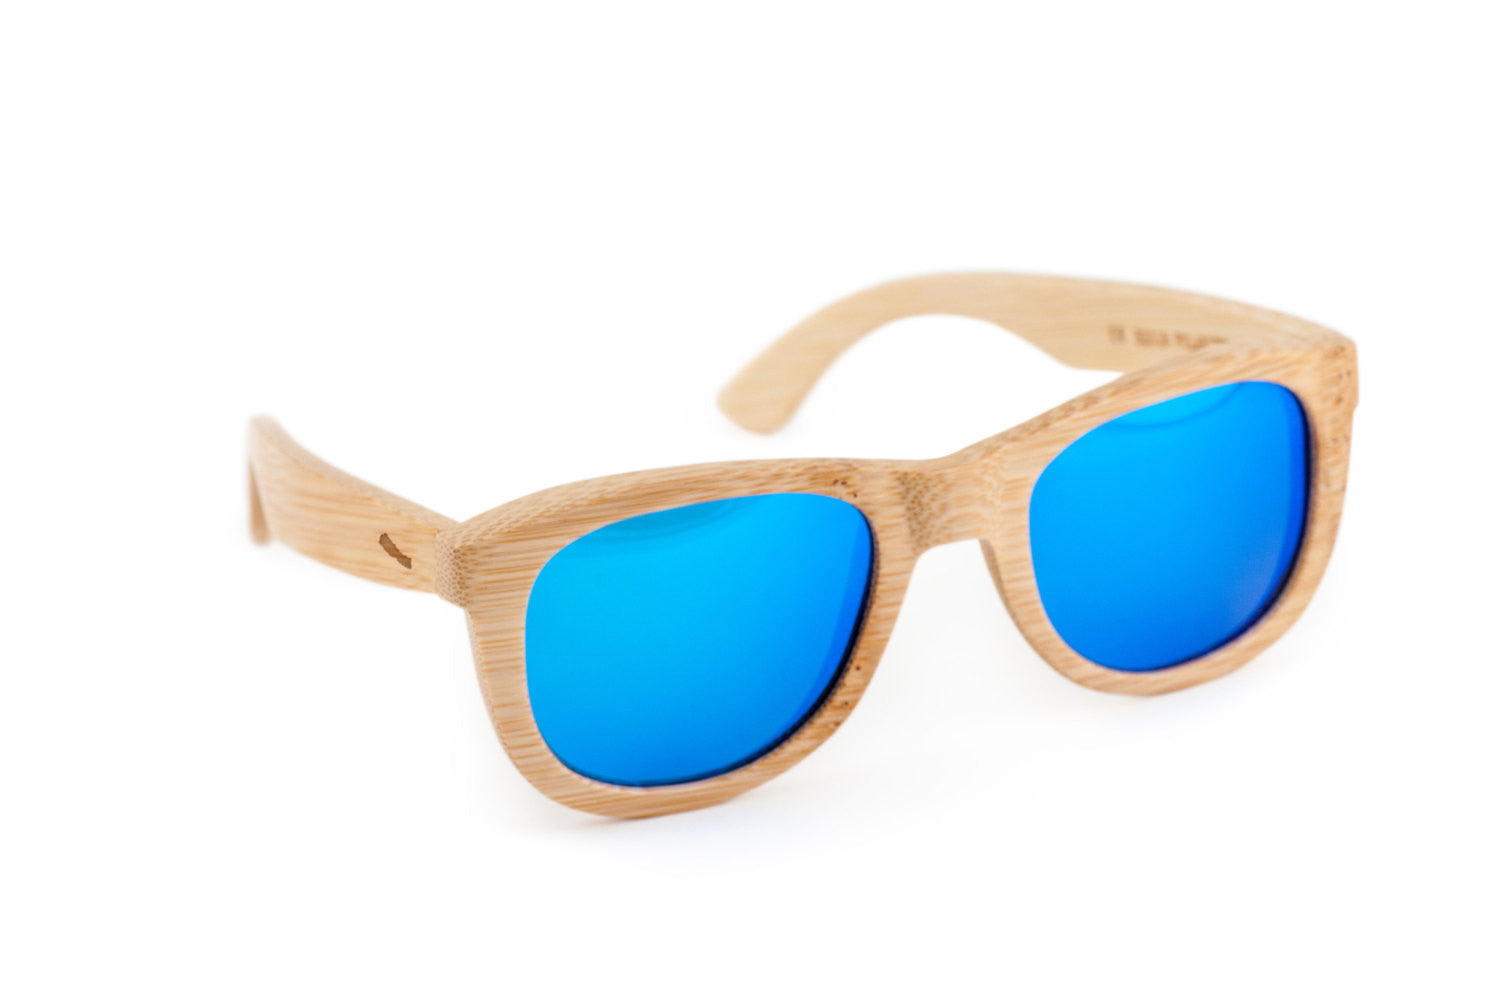 bca82564c41a1 Nepal Wooden Bamboo Sunglasses – Wooden Accessories Co